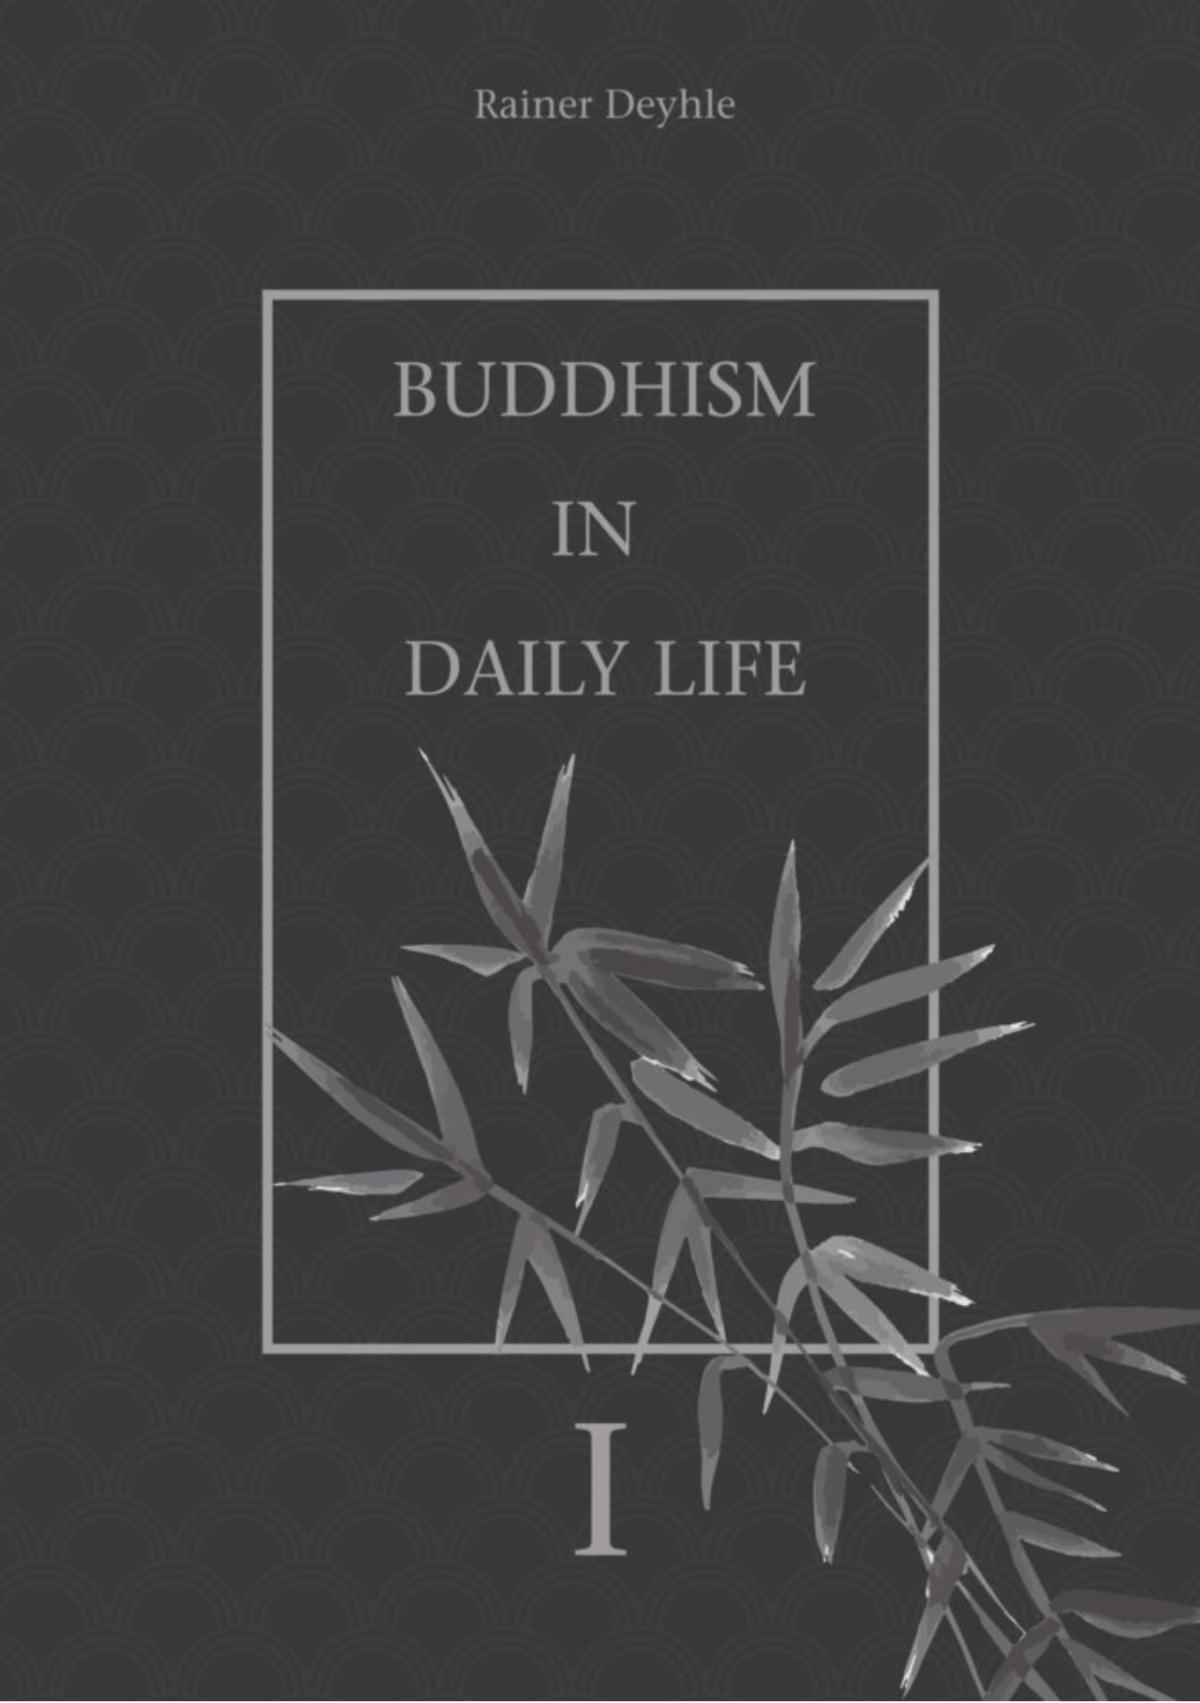 My book: Buddhism in daily life